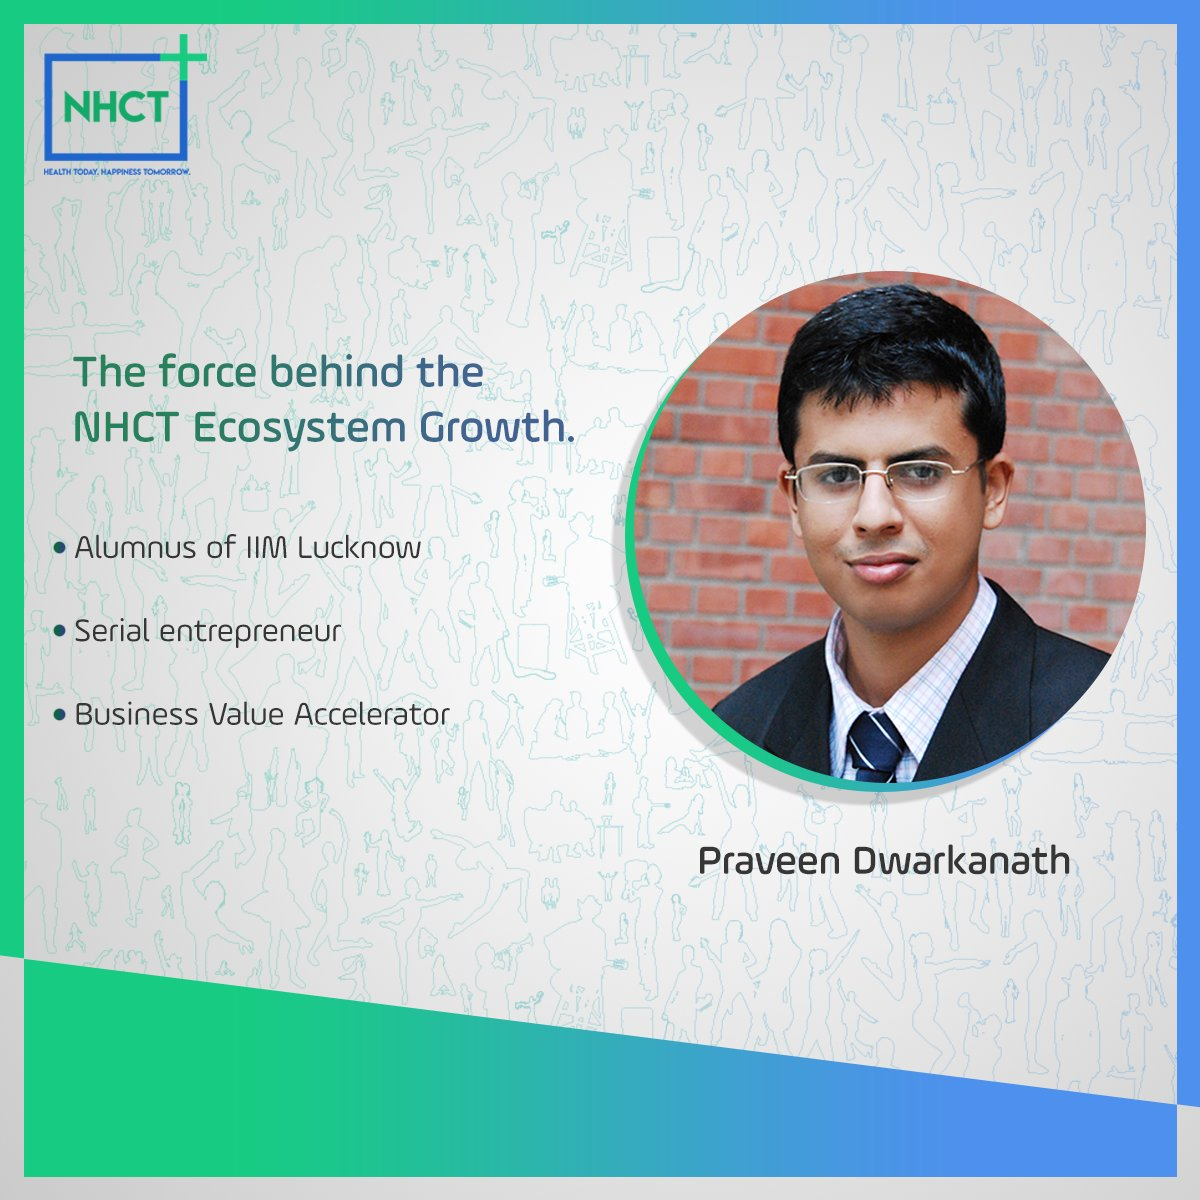 Meet Praveen Dwarakanath, the force that has put NHCT on an accelerated growth path . @praveen_dwaraka  #blockchain #crypto #tokens #nhct #nanohealth #ethereum #ico #NHCToken #cryptocurrency #cryptolife<br>http://pic.twitter.com/RBa5JCQiQu